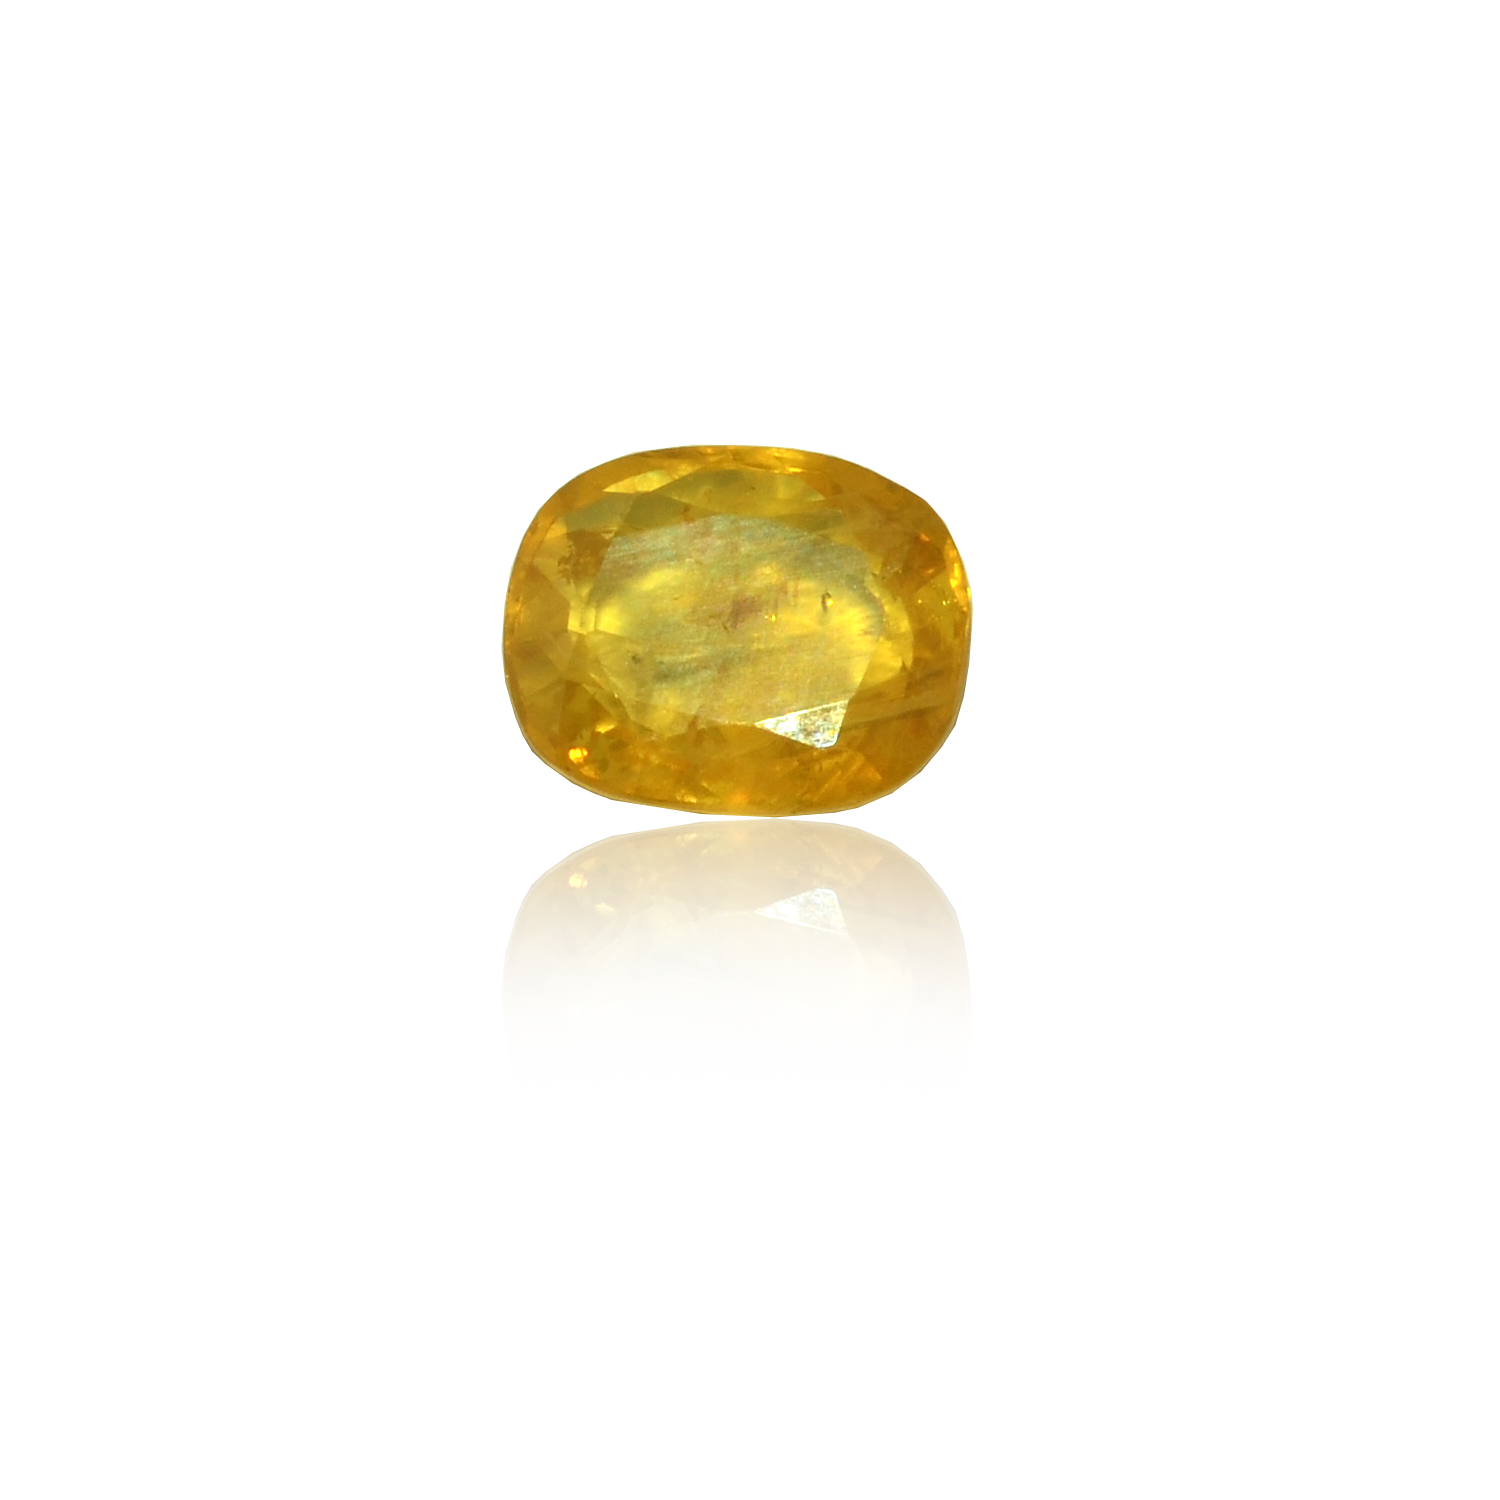 3.69 CARAT, OVAL MIXED CUT NATURAL YELLOW SAPPHIRE